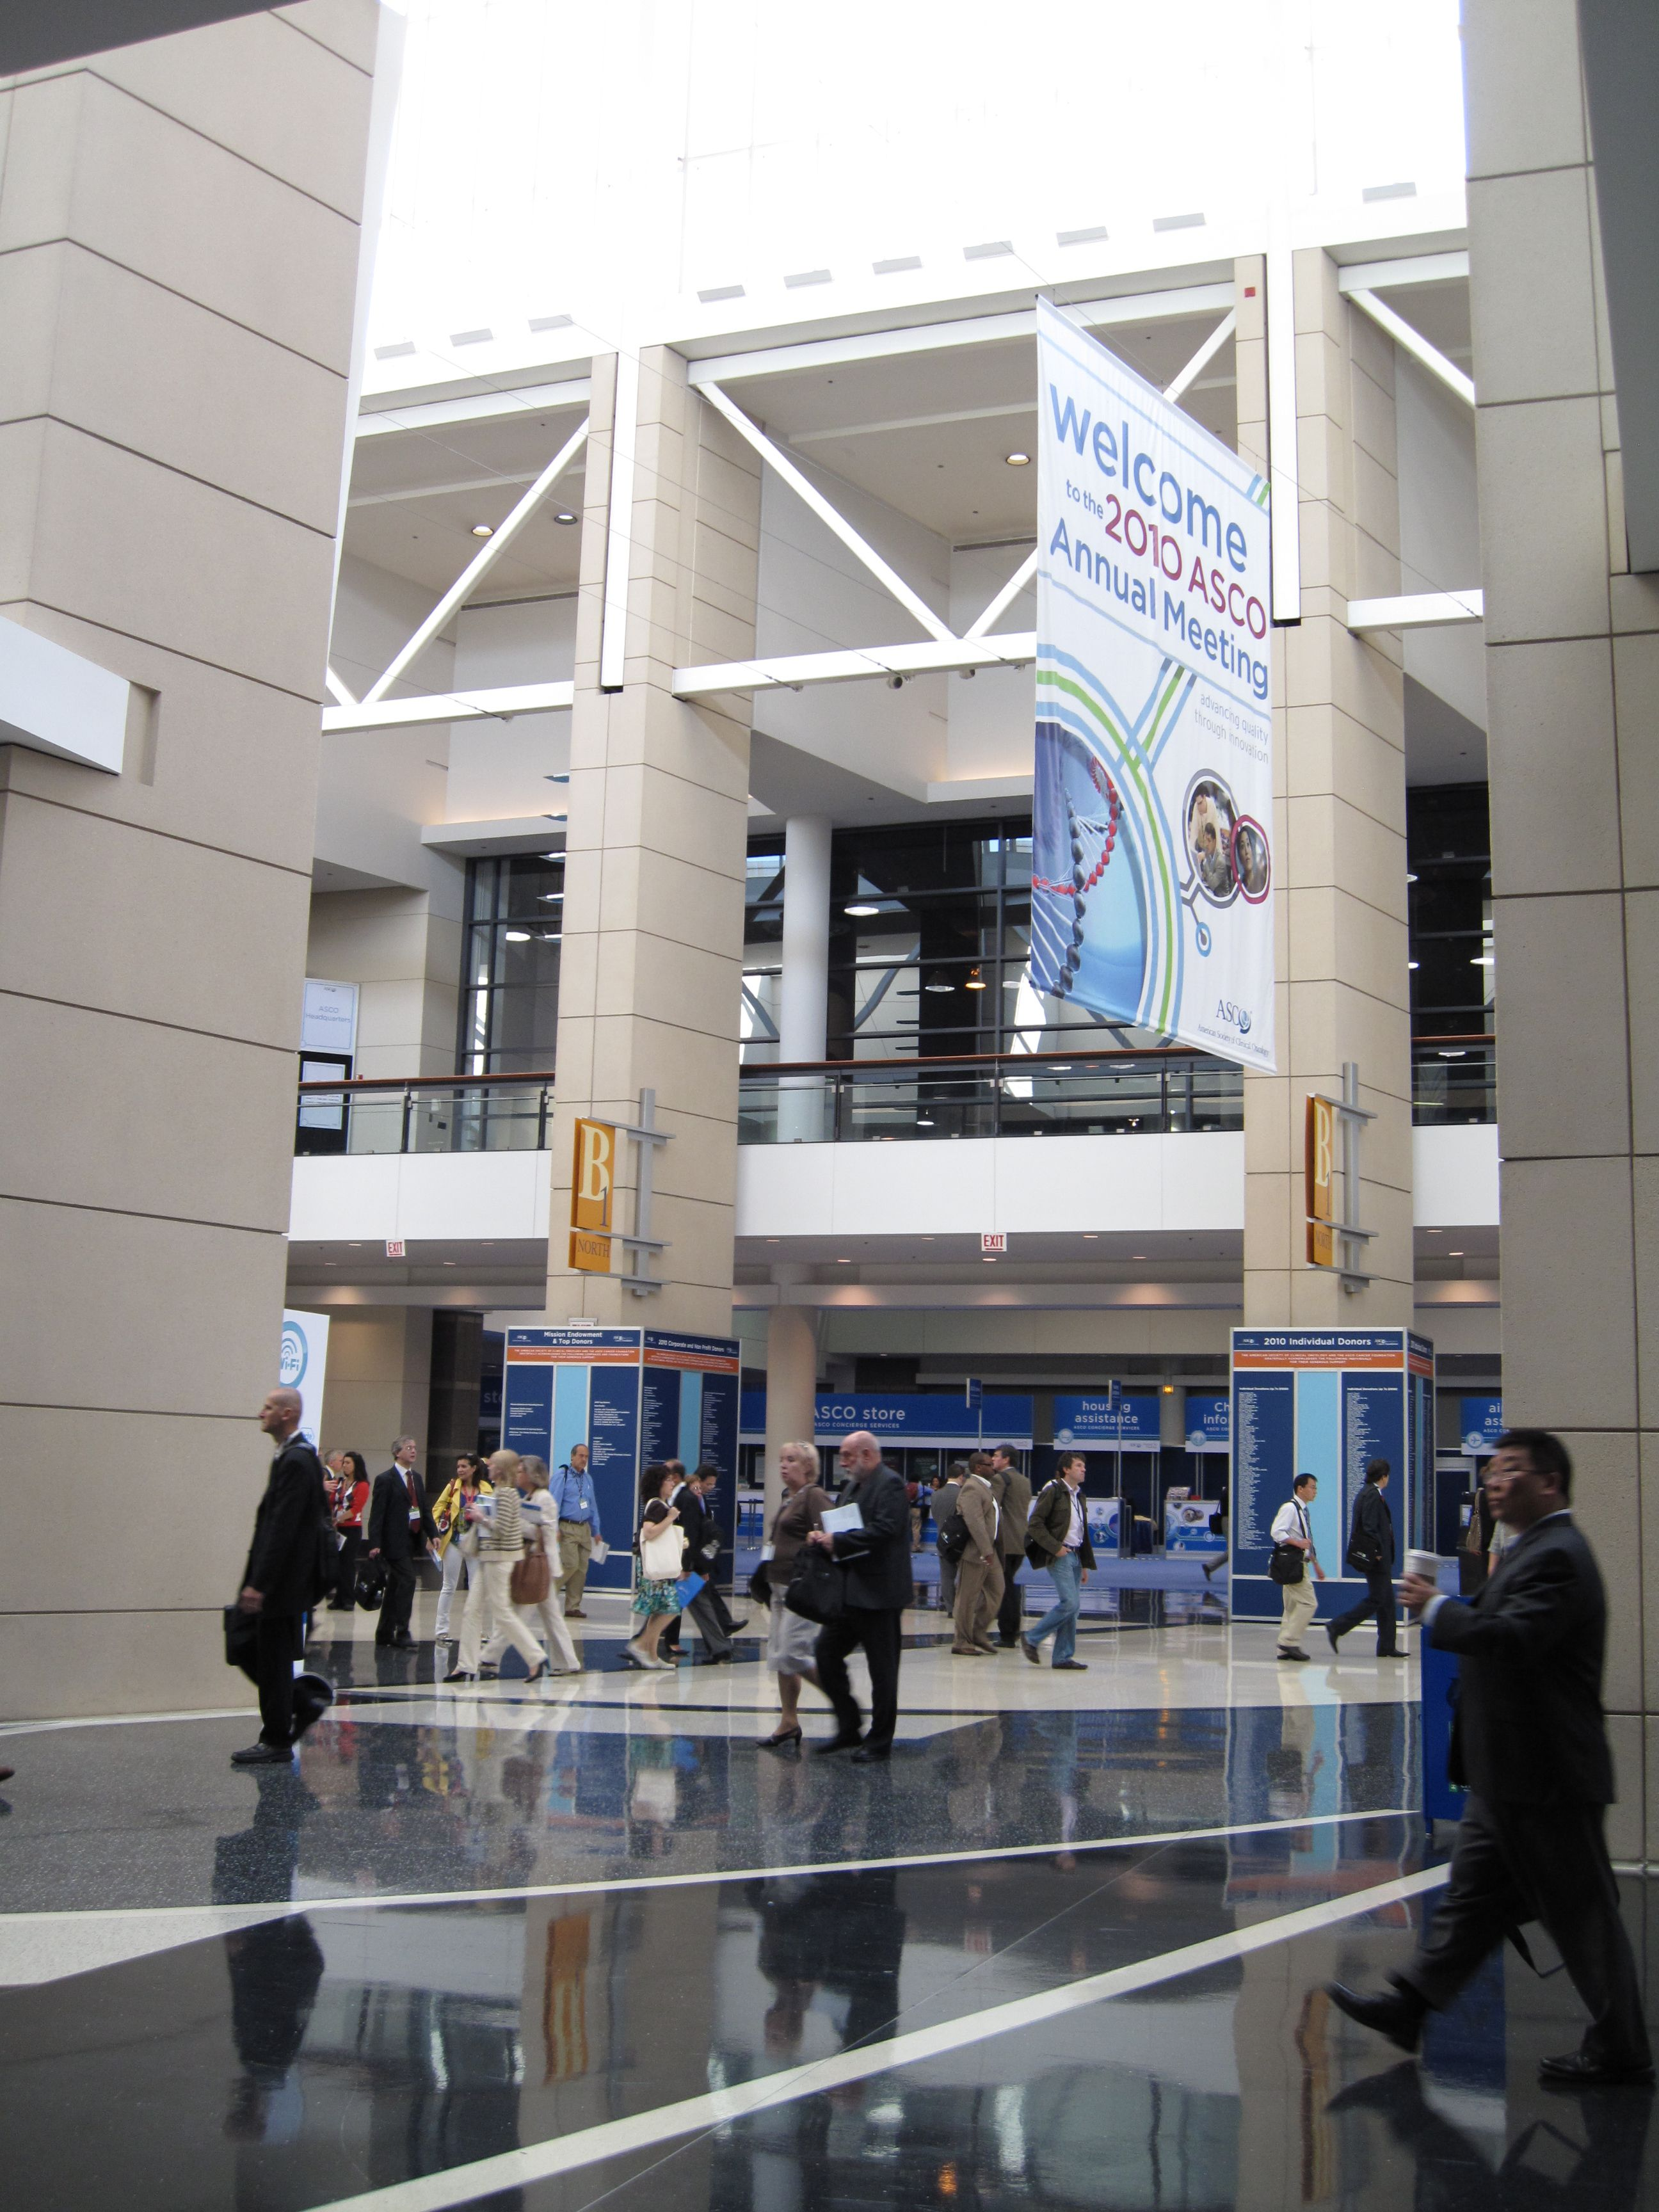 Trade Event Stands : Asco annual meeting